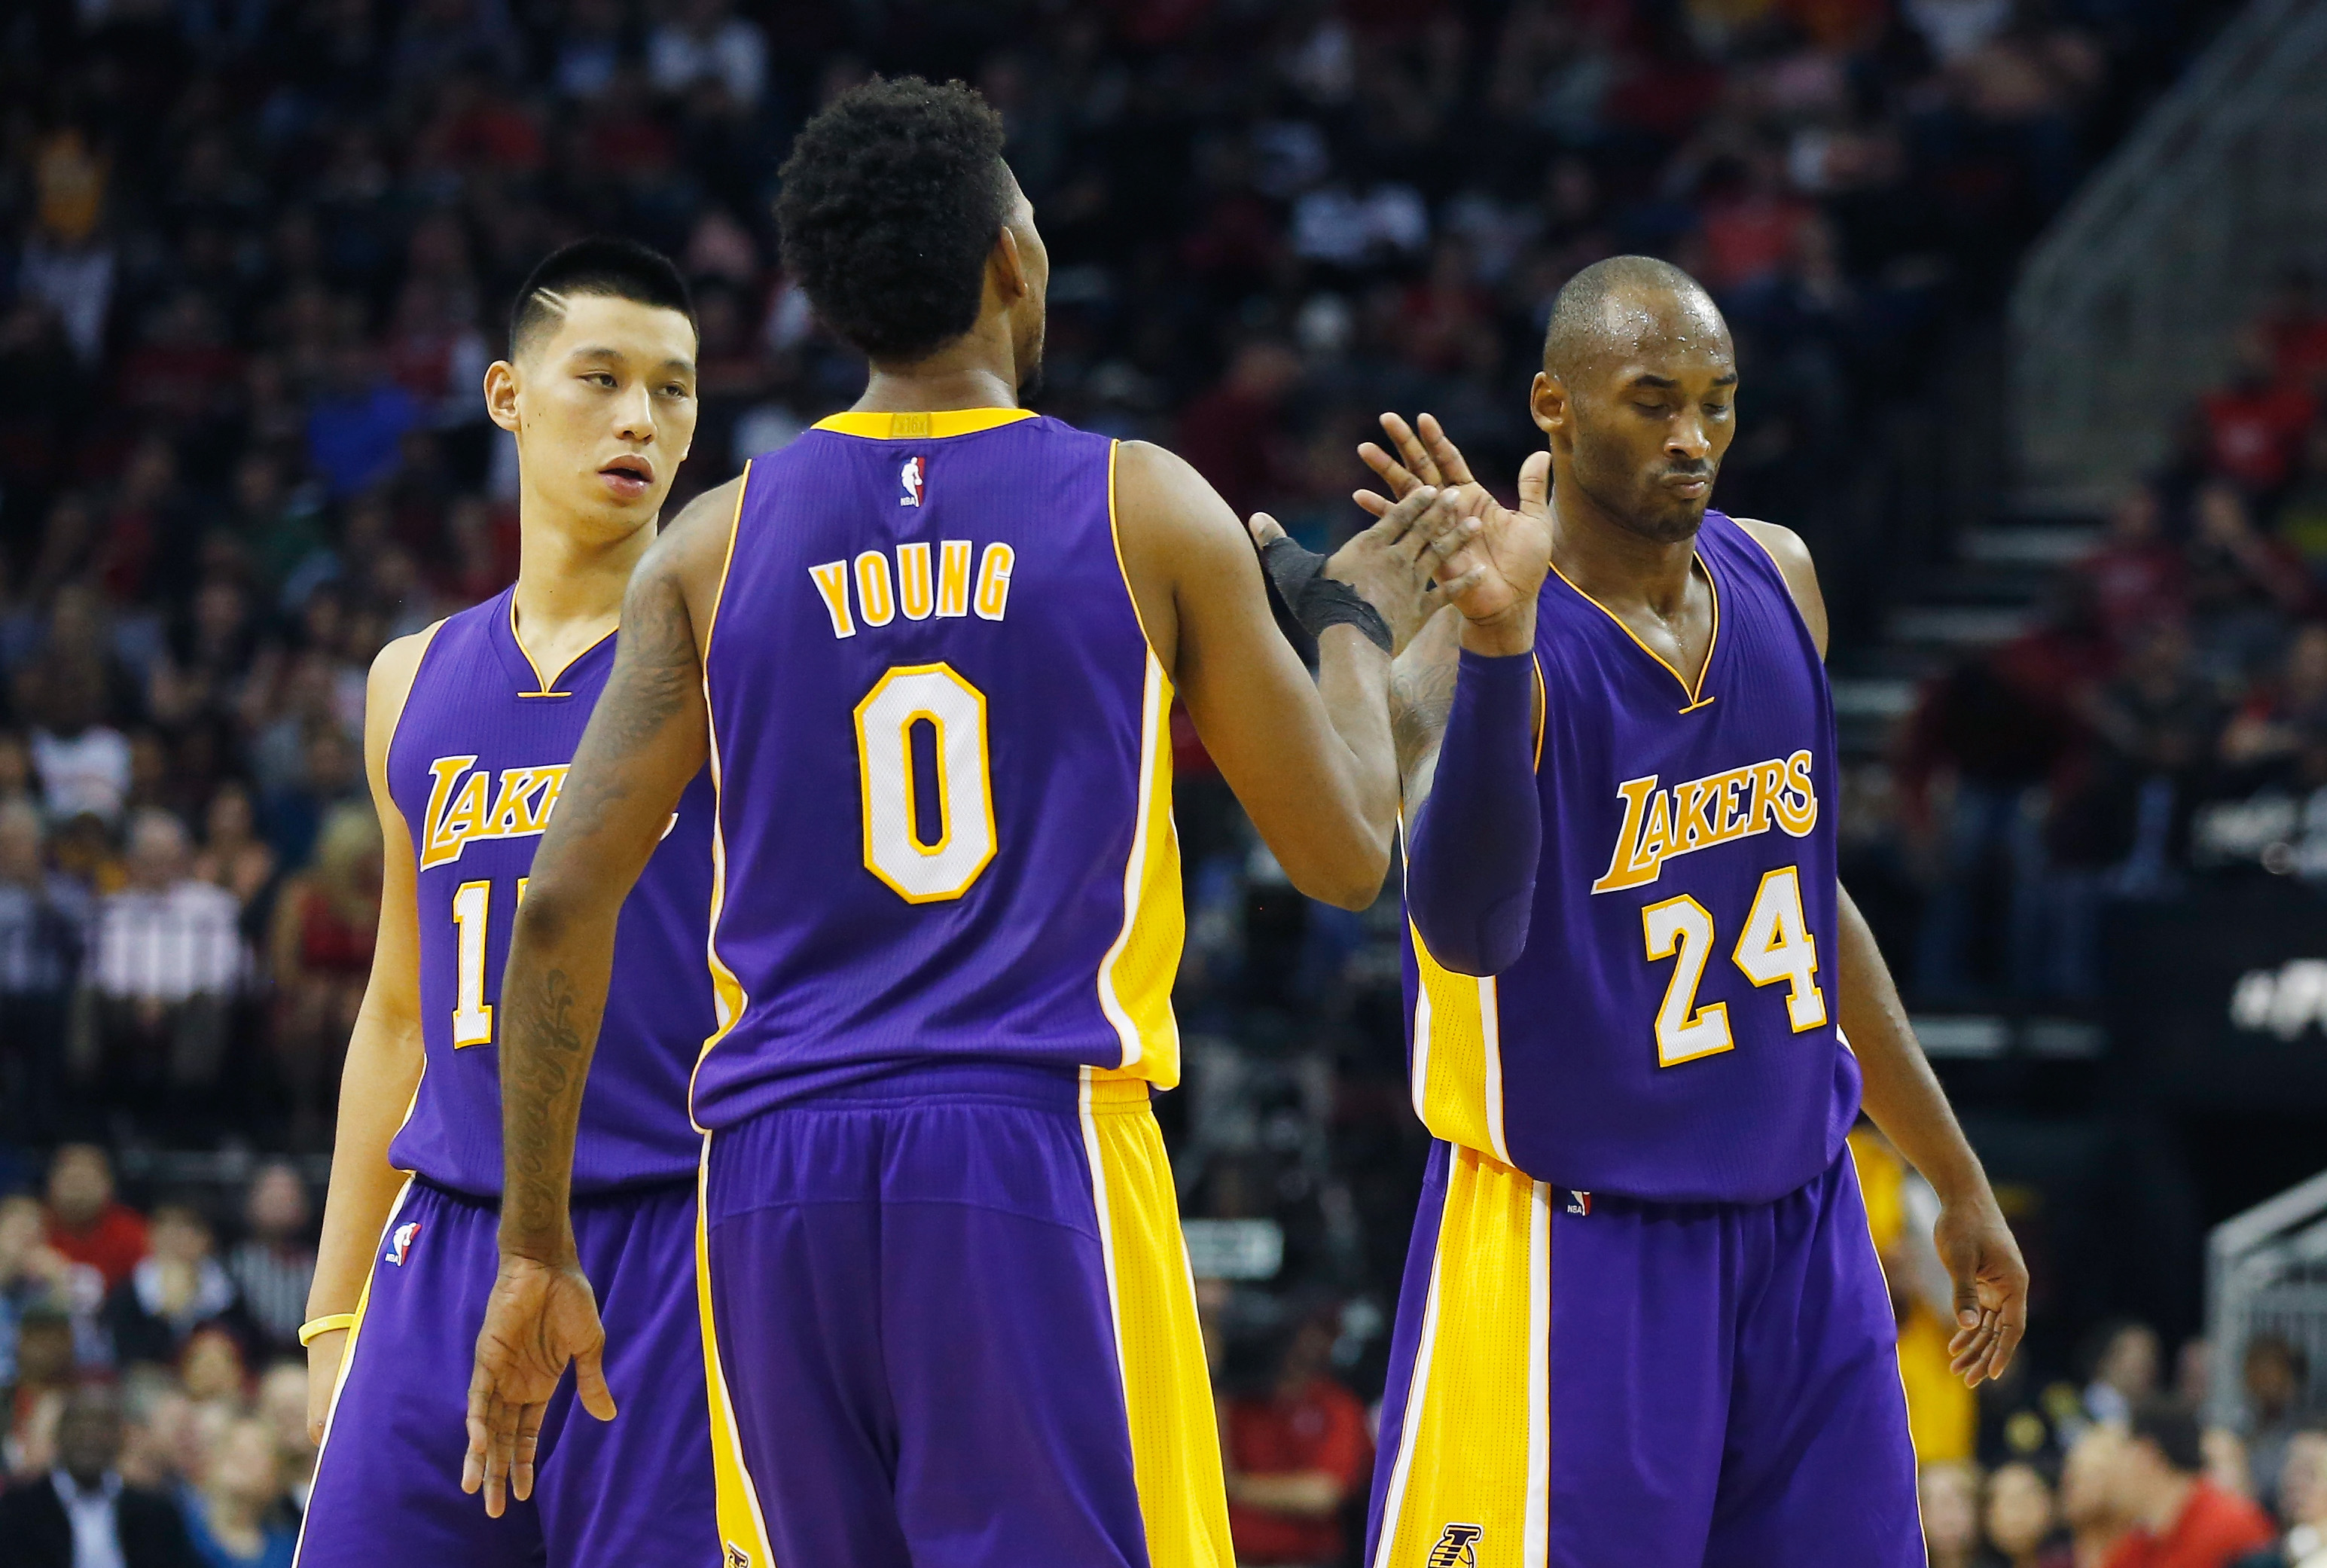 HOUSTON, TX - NOVEMBER 19: Kobe Bryant #24 of the Los Angeles Lakers celebrates a play with Jeremy Lin #17 and Nick Young #0 during their game against the Houston Rockets at the Toyota Center on November 19, 2014 in Houston, Texas. NOTE TO USER: User expressly acknowledges and agrees that, by downloading and/or using this photograph, user is consenting to the terms and conditions of the Getty Images License Agreement.